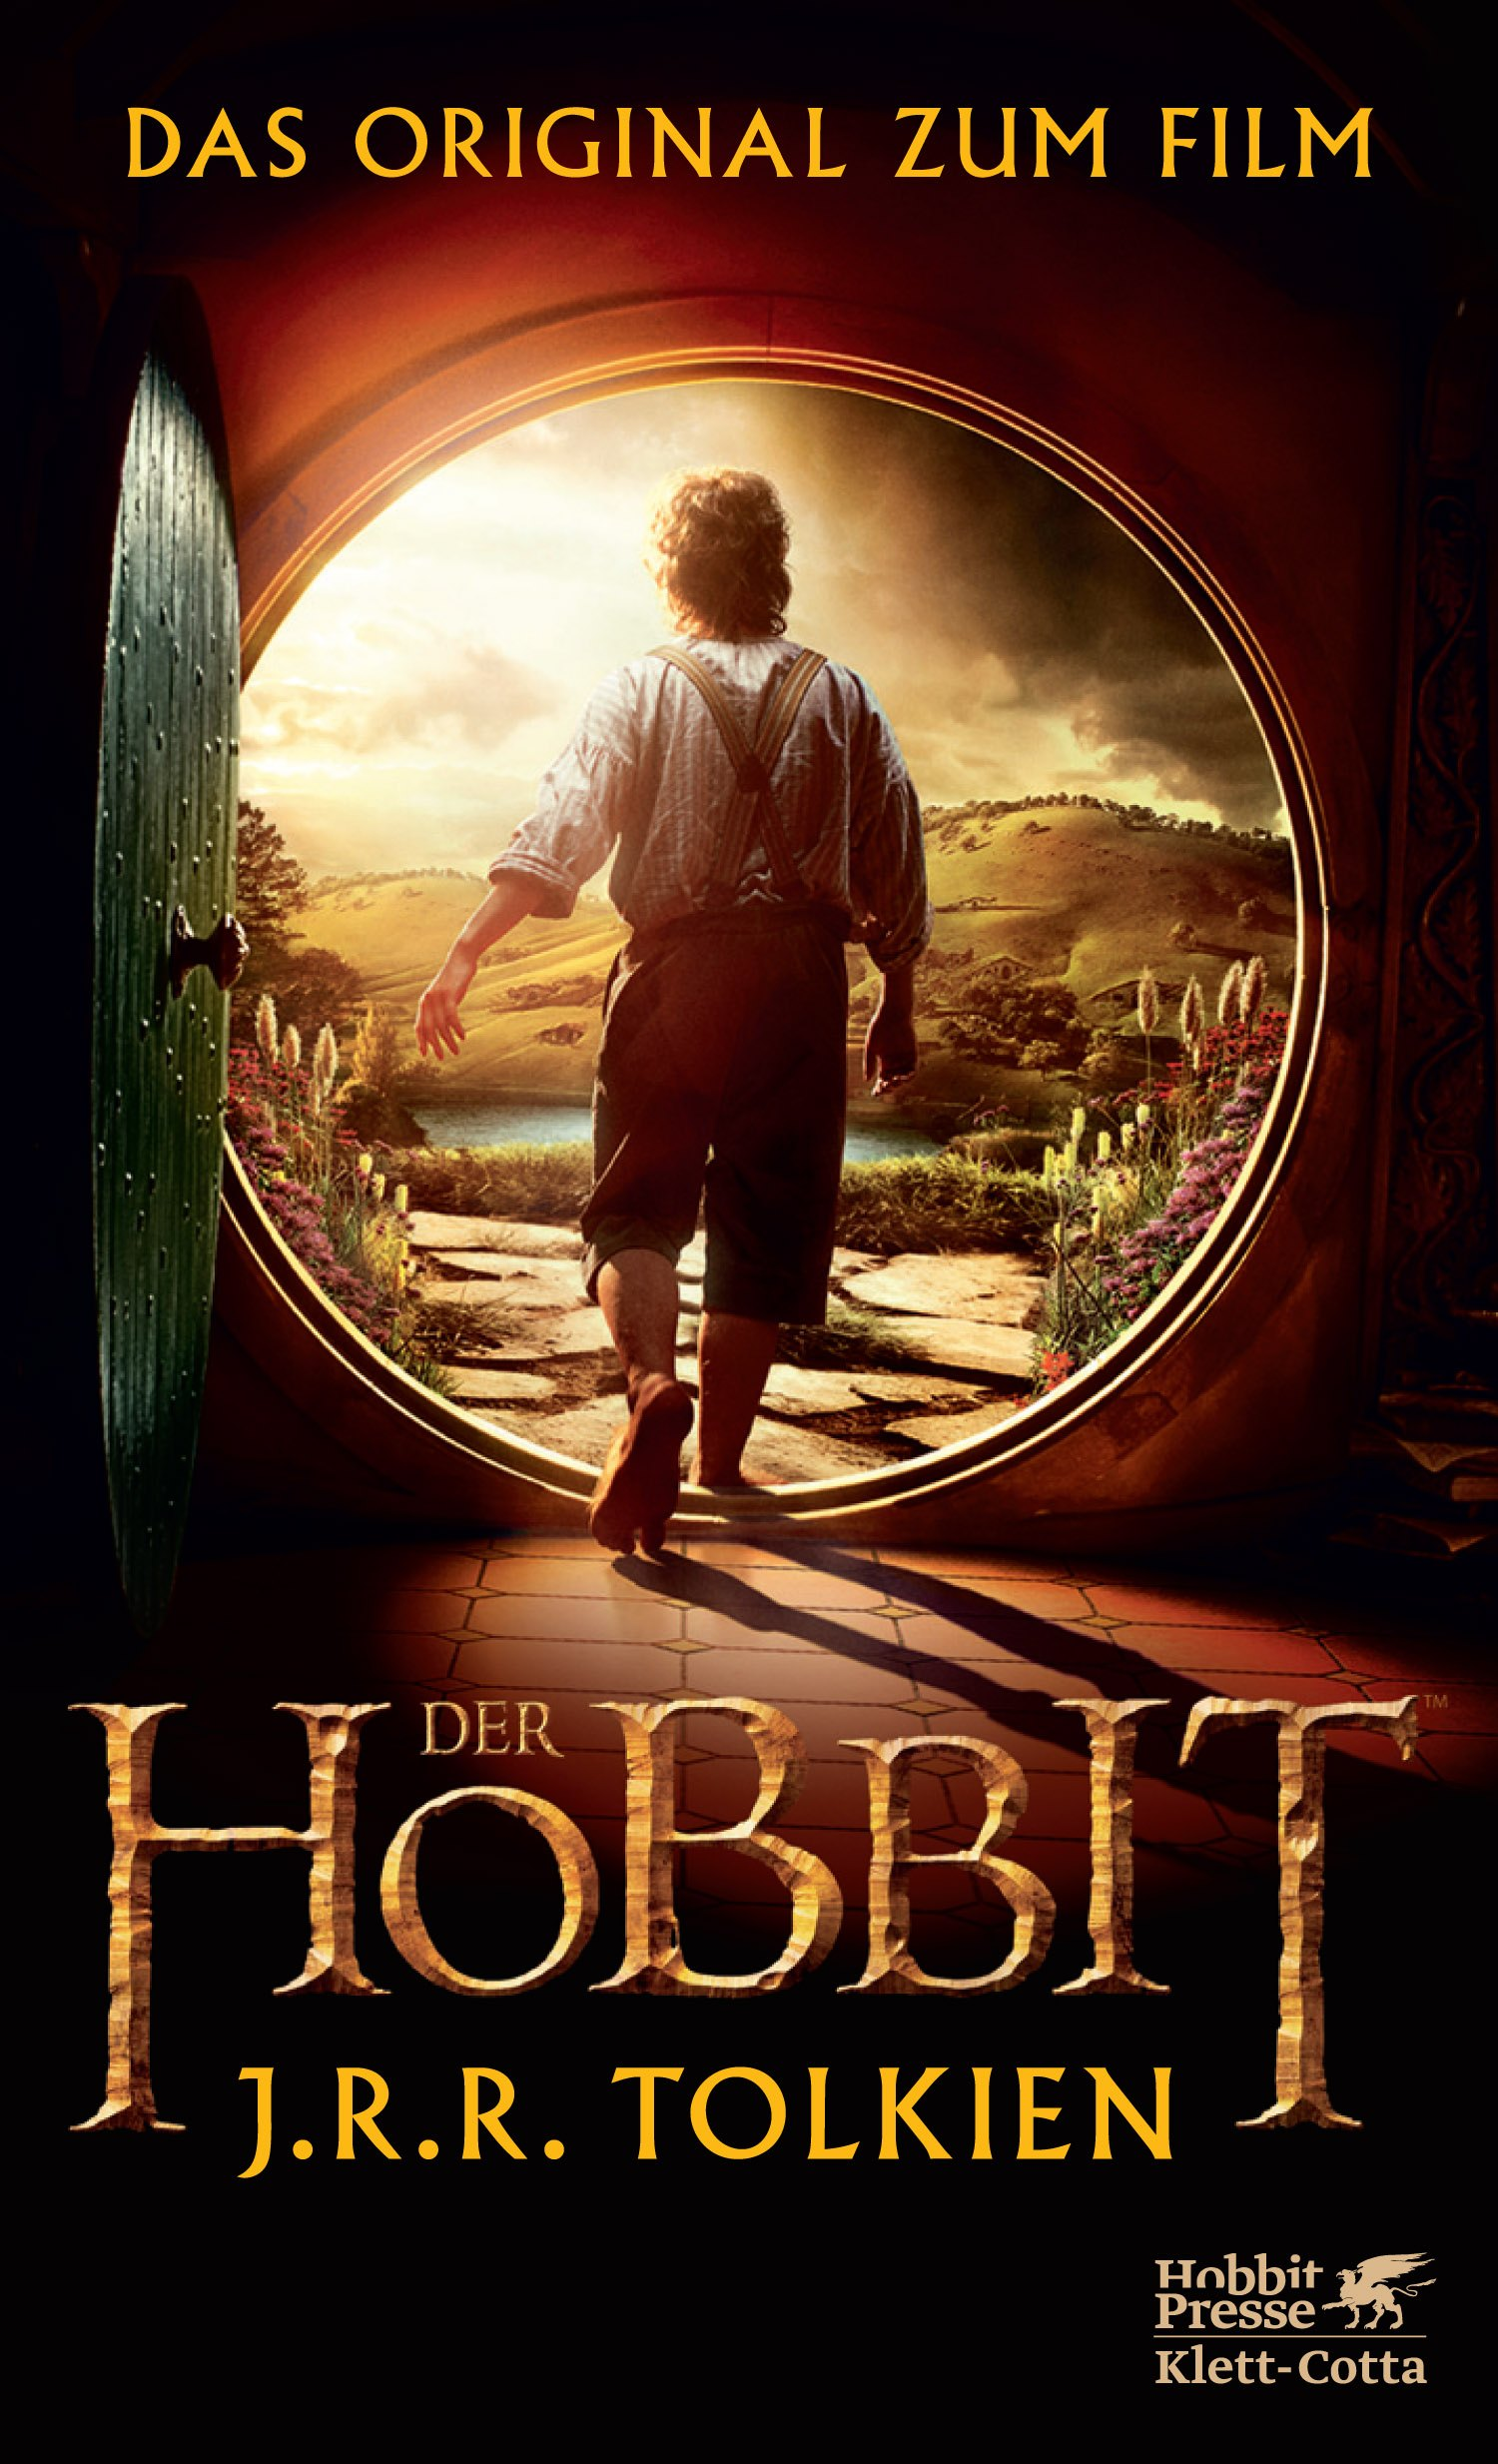 hobbit j r r tolkien Find great deals on ebay for the hobbit jrr tolkien in books about fiction and literature shop with confidence.